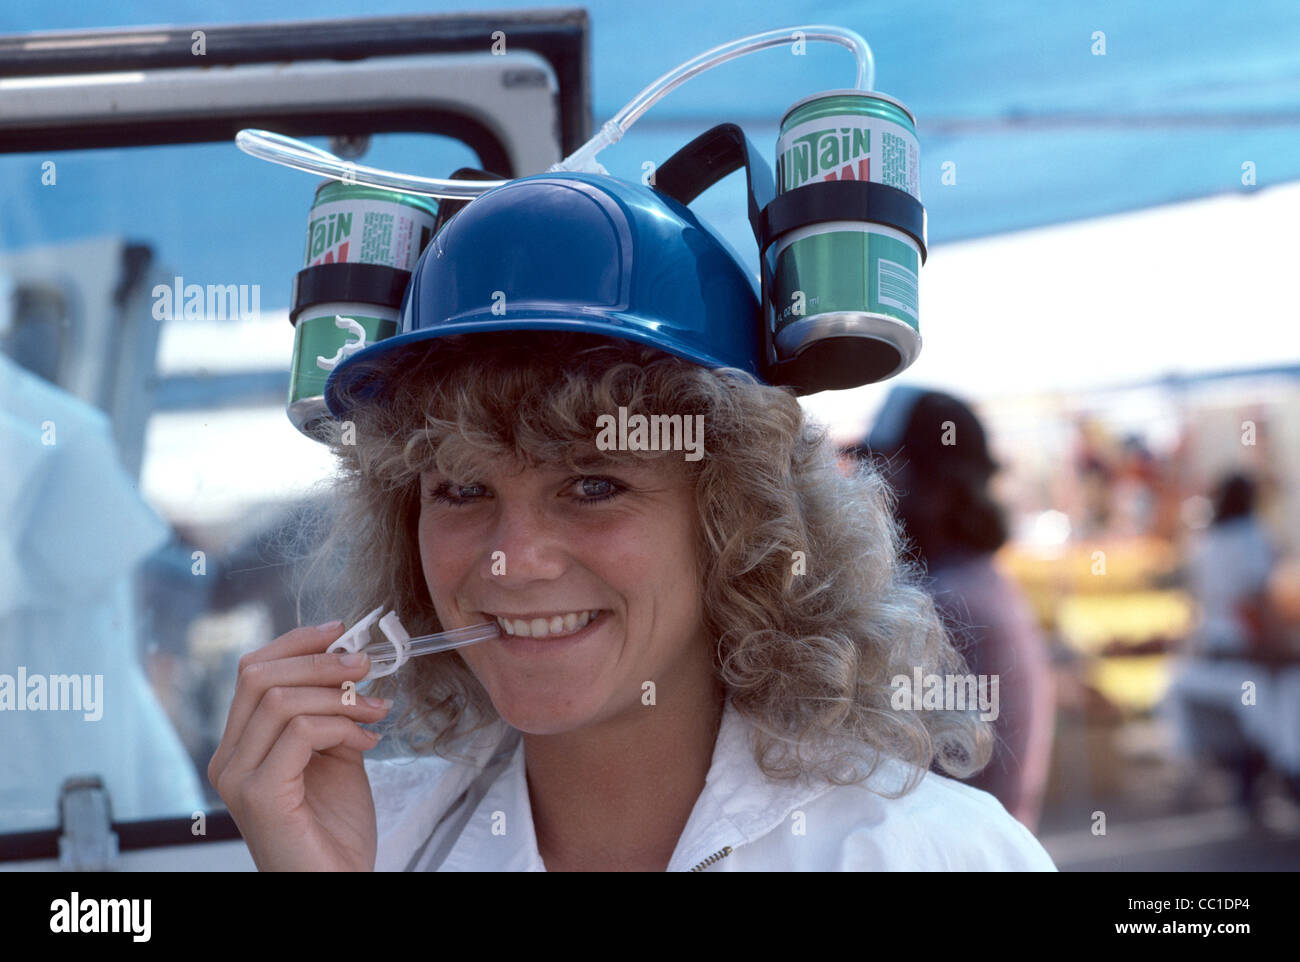 1970's image of silly hat with soda pop connected to brim and straw reaching the mouth - Stock Image